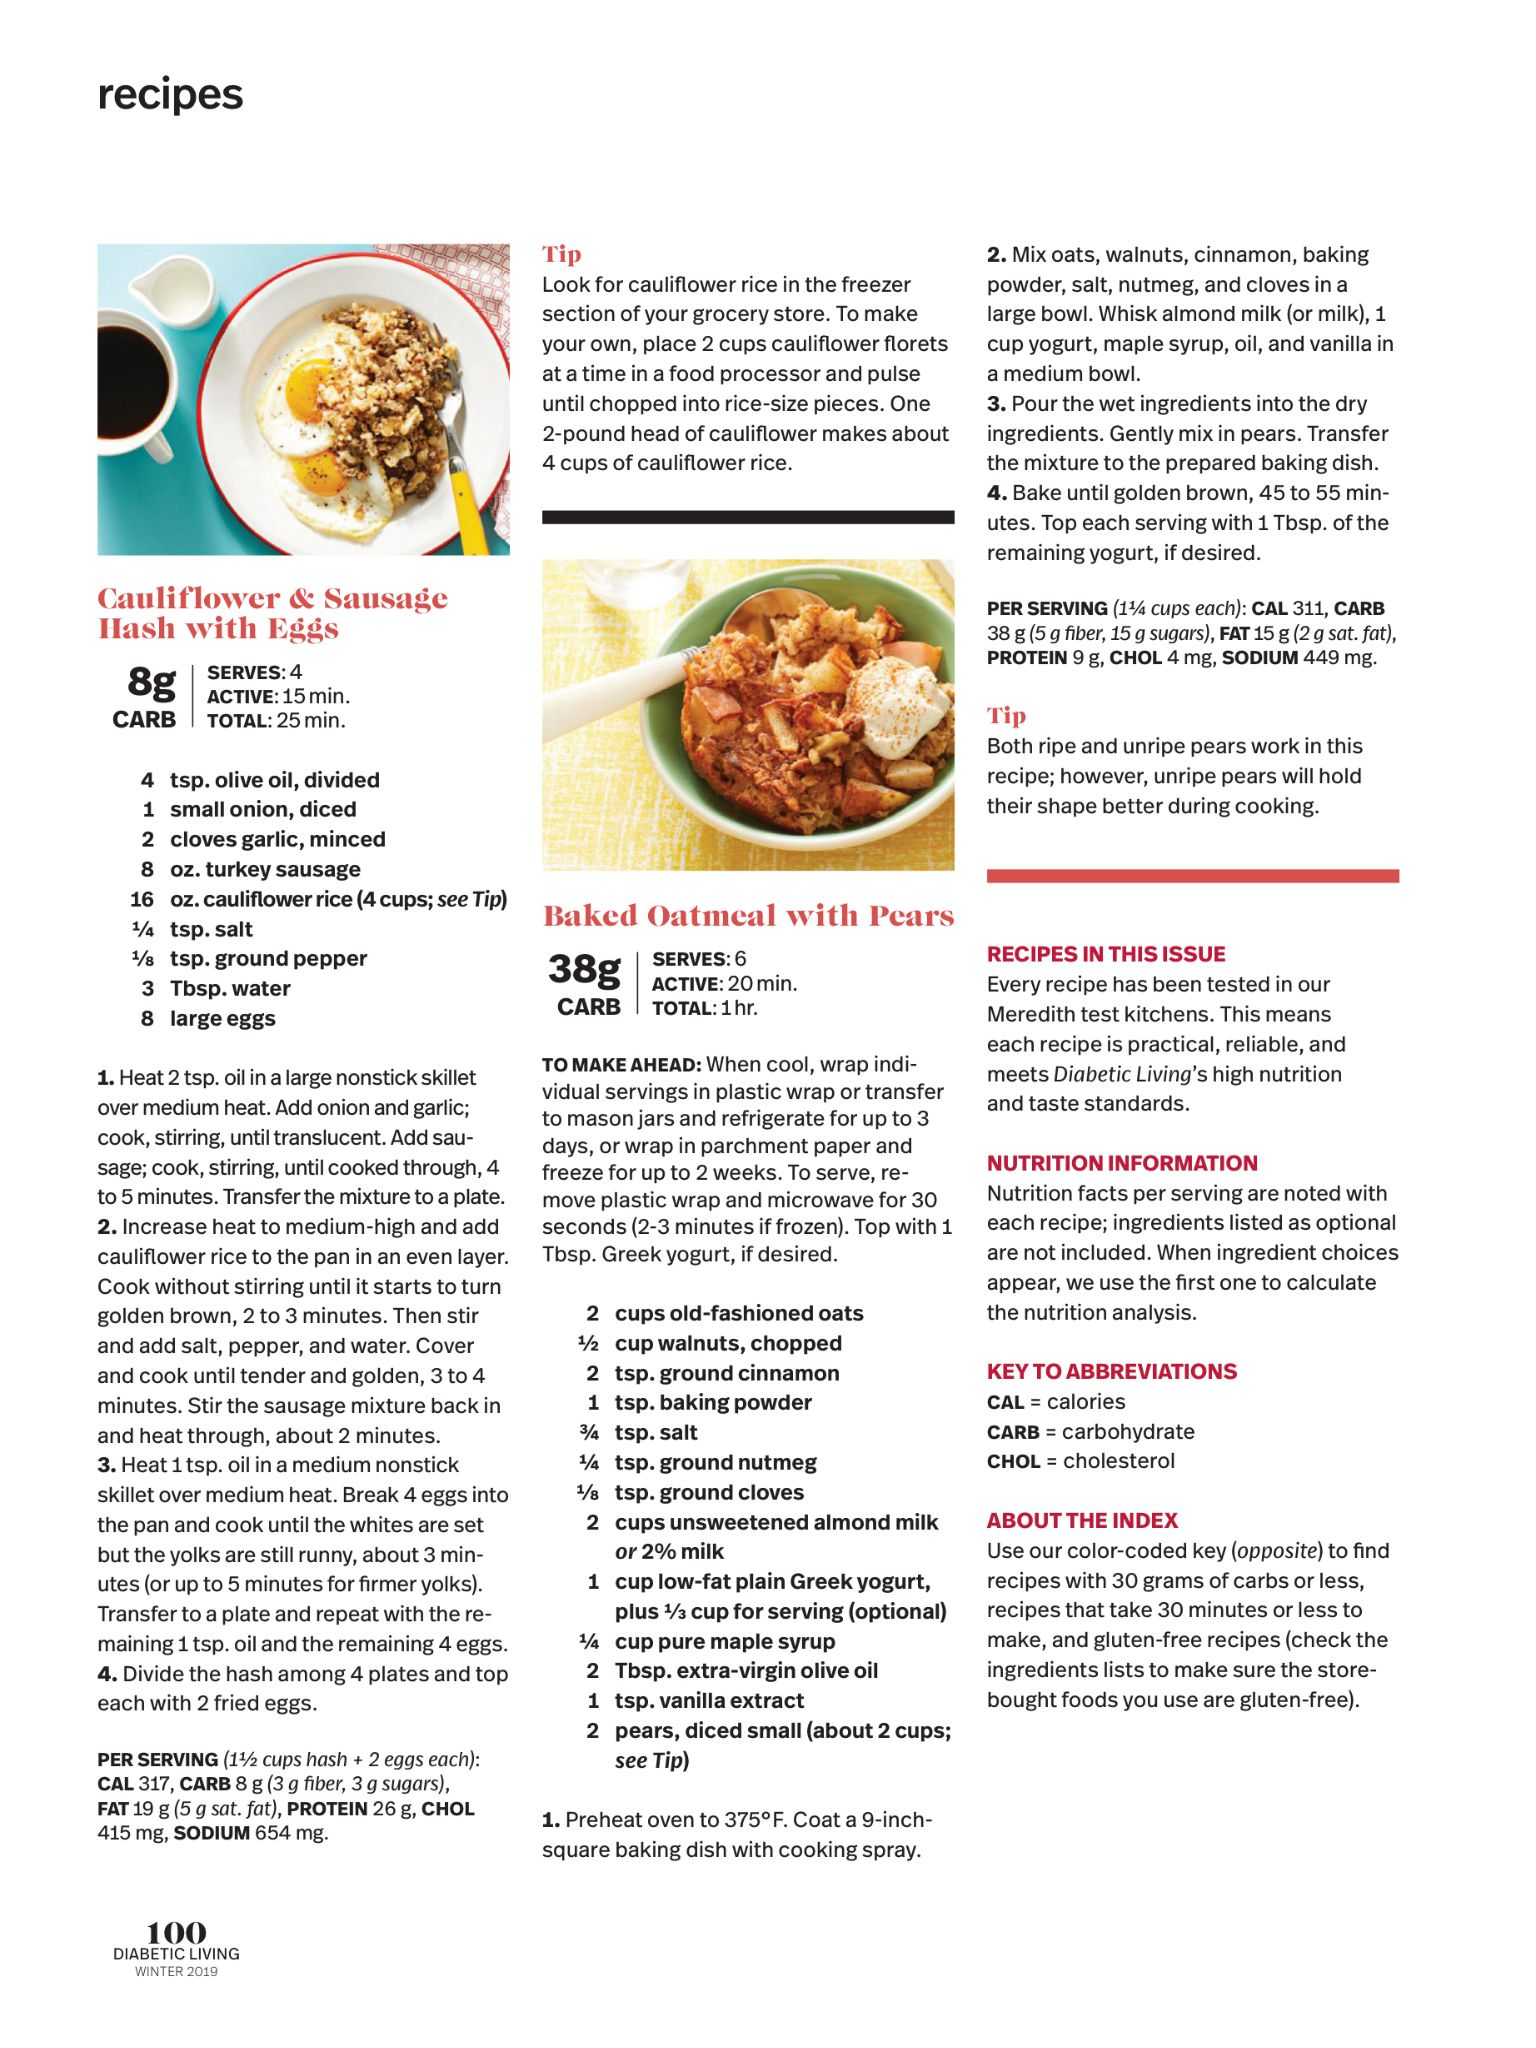 Recipes From Diabetic Living Magazine Winter 2018 Read It